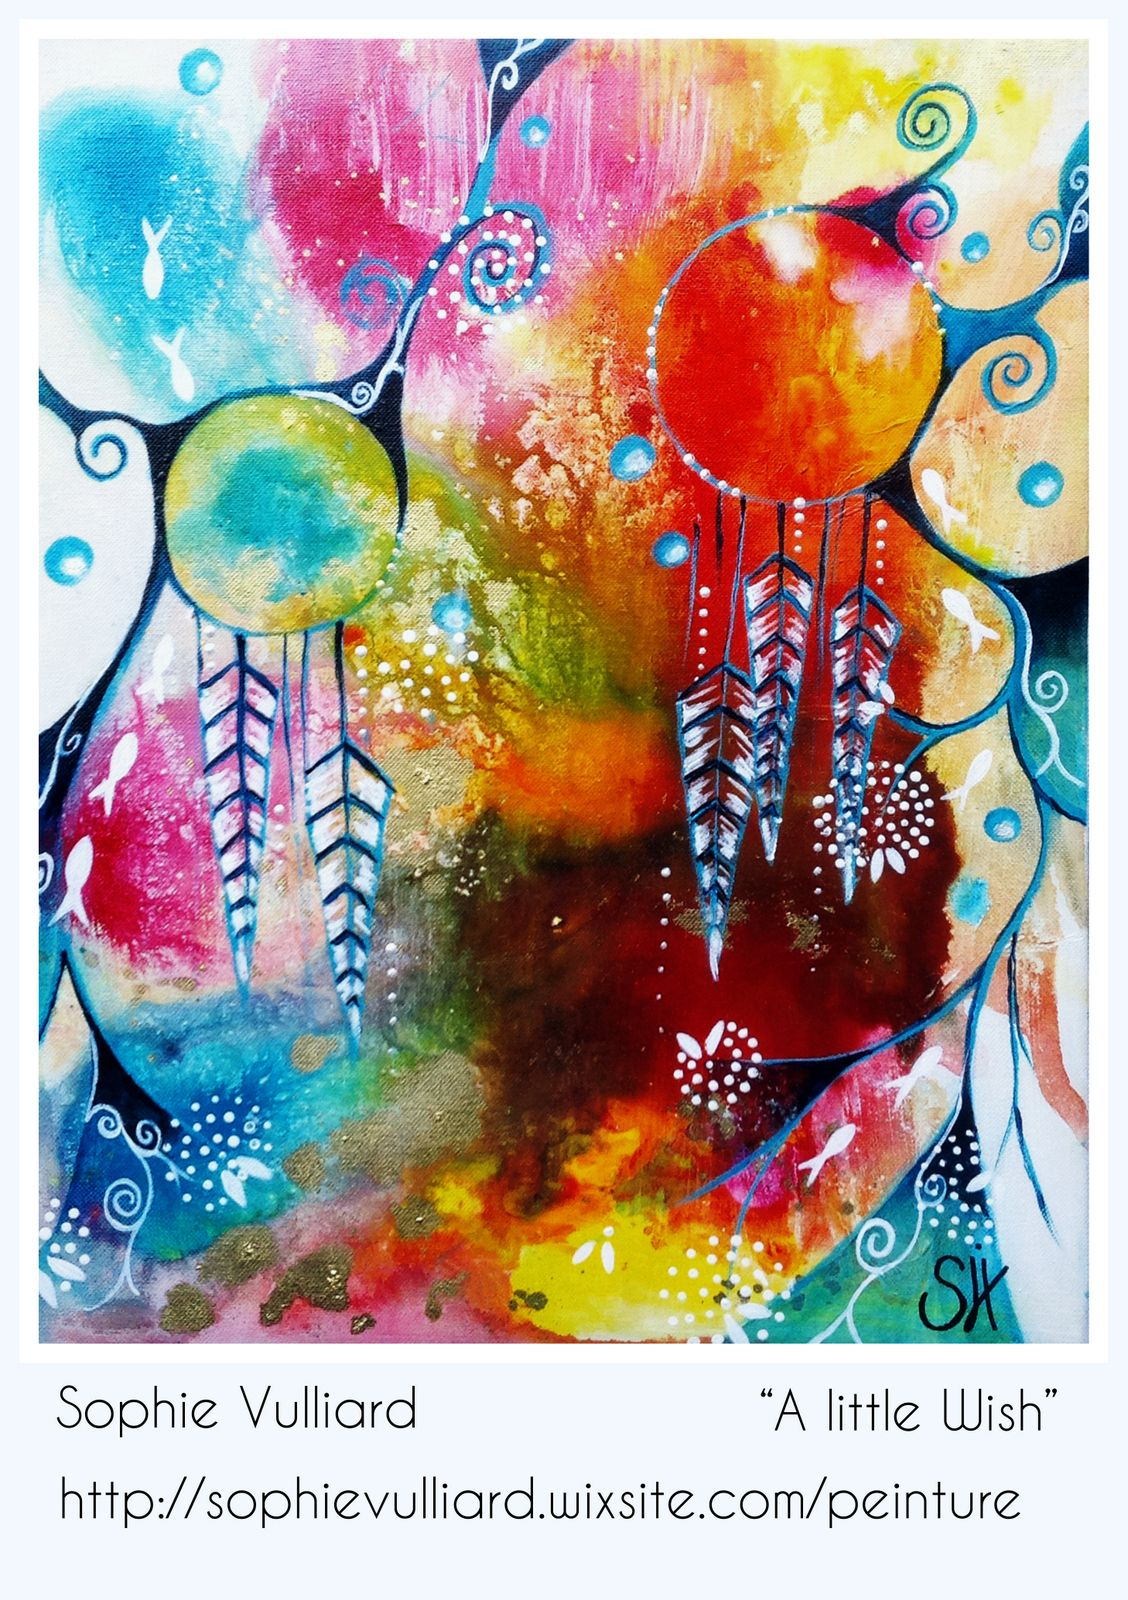 By Sophie Vulliard Intuitive Painting Peinture Intuitive Peinture